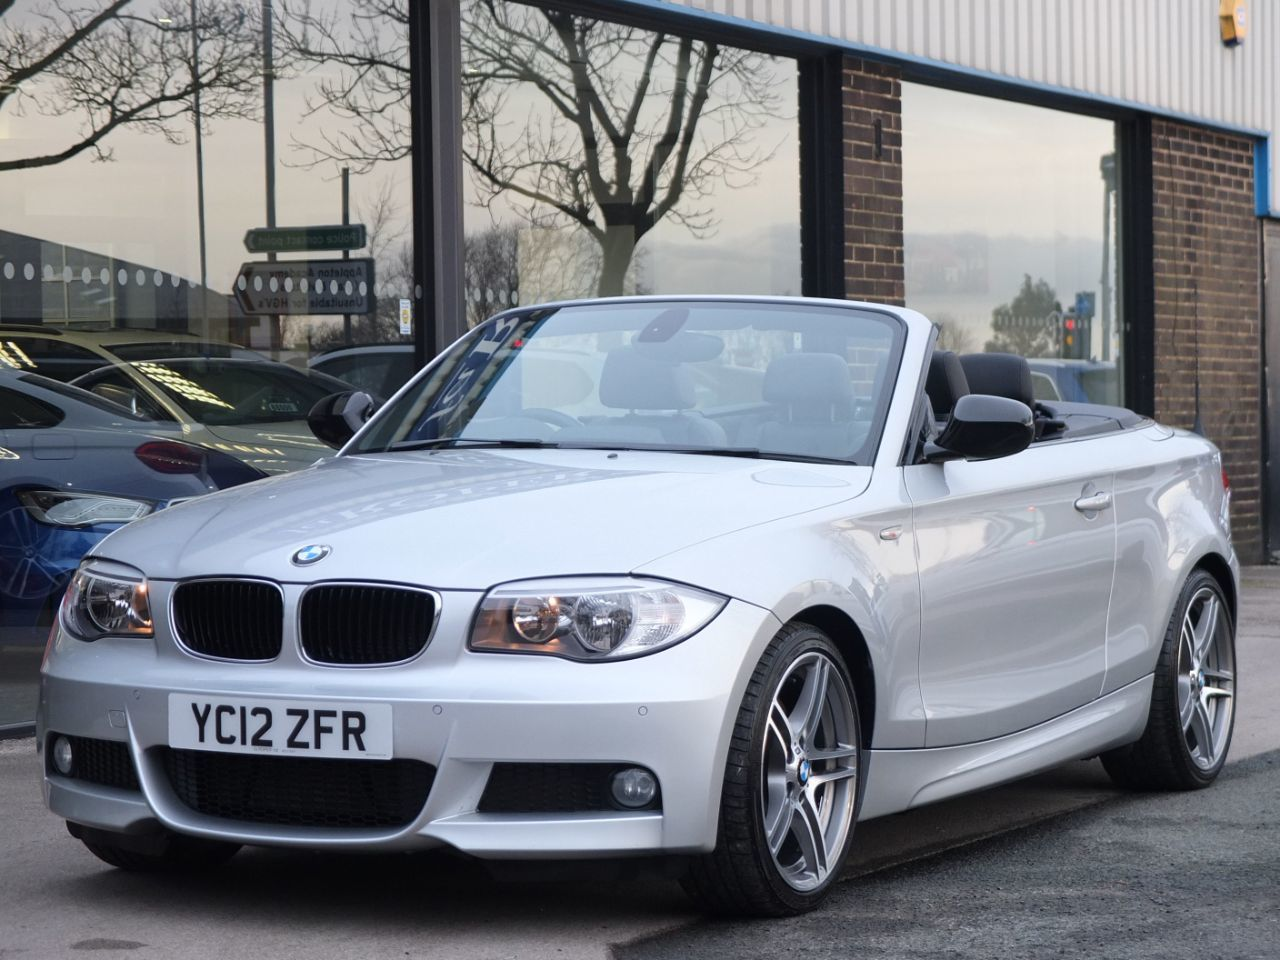 BMW 1 Series 2.0 123d Sport Plus Edition Cabriolet Convertible Diesel Titanium Silver MetallicBMW 1 Series 2.0 123d Sport Plus Edition Cabriolet Convertible Diesel Titanium Silver Metallic at fa Roper Ltd Bradford